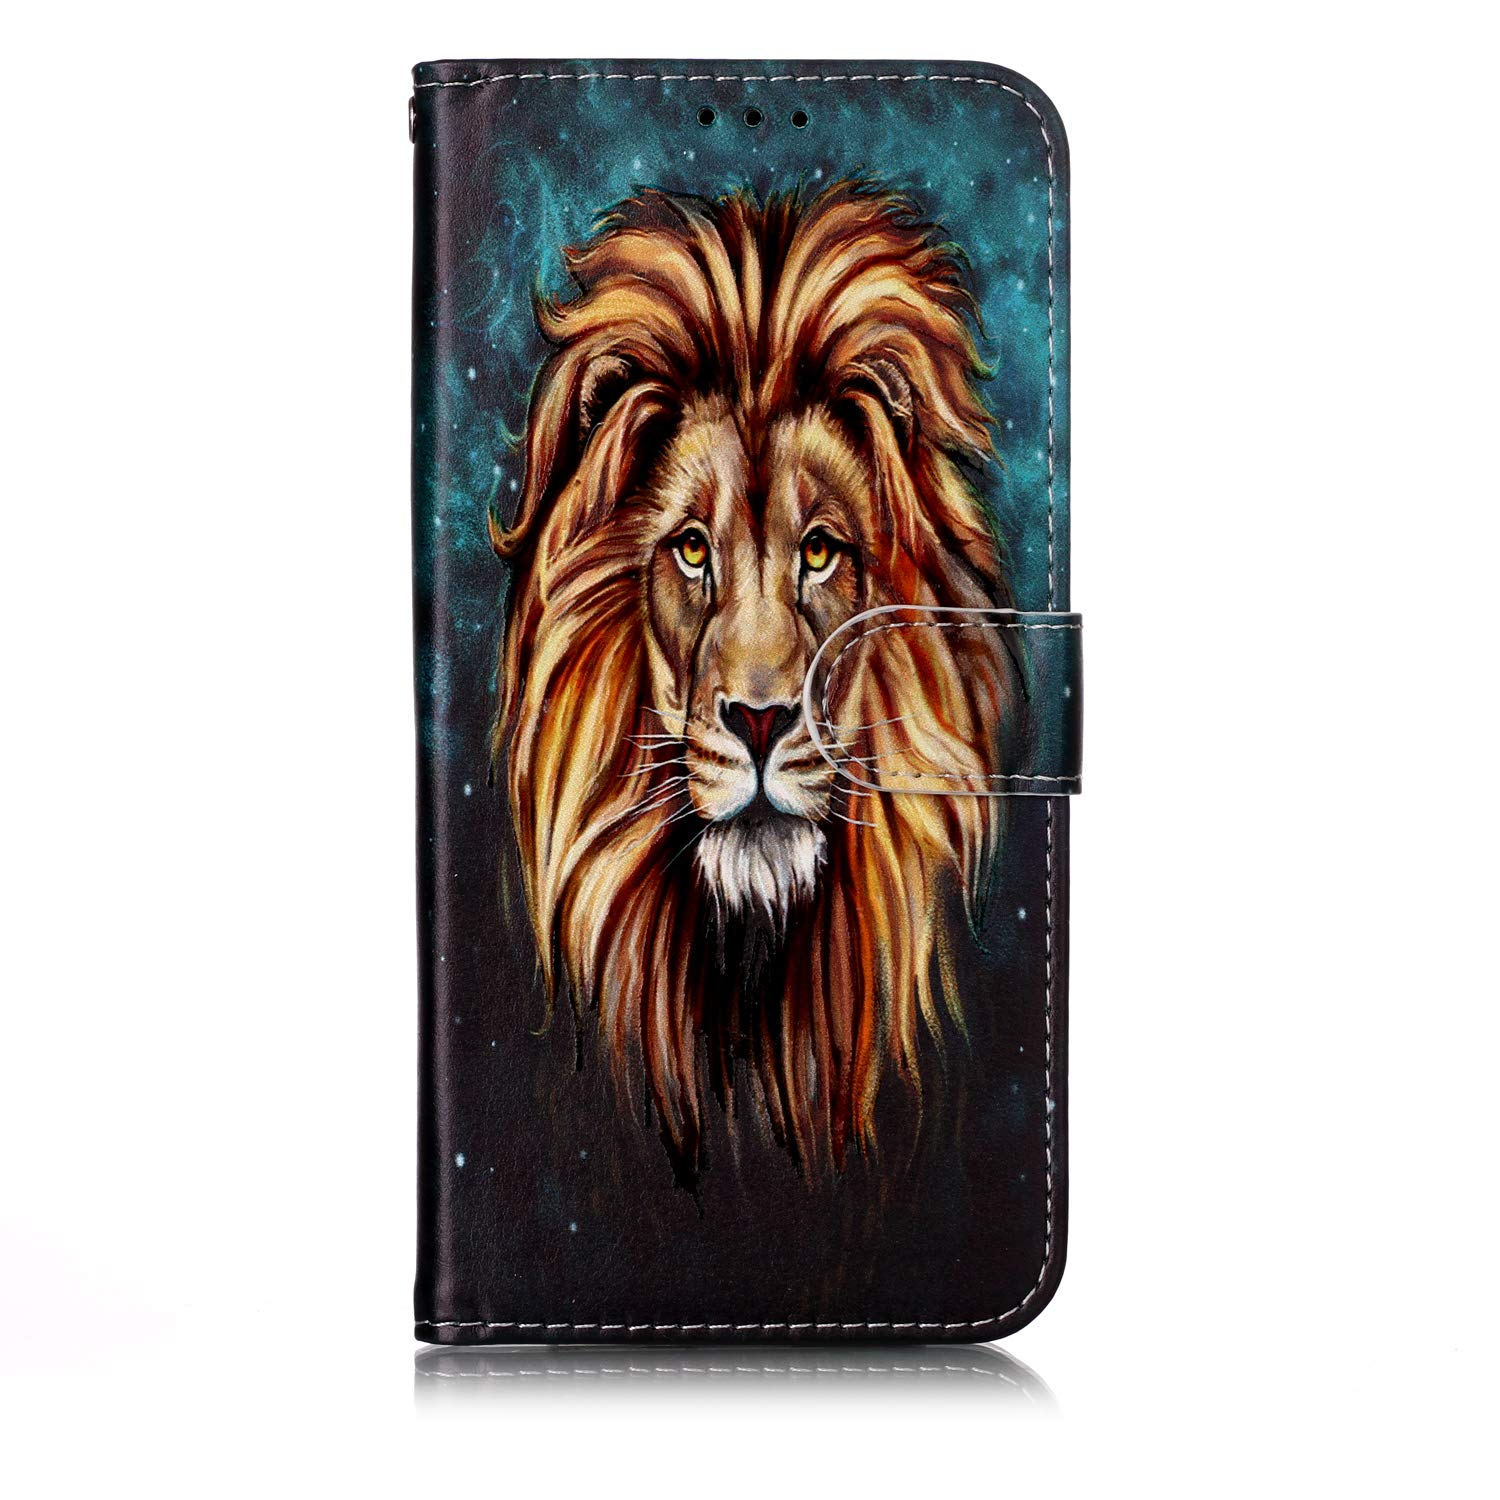 LOYHU010199 L9 Lomogo Samsung Galaxy A50 Case Leather Wallet Case with Kickstand Card Holder Shockproof Flip Case Cover for Galaxy A50